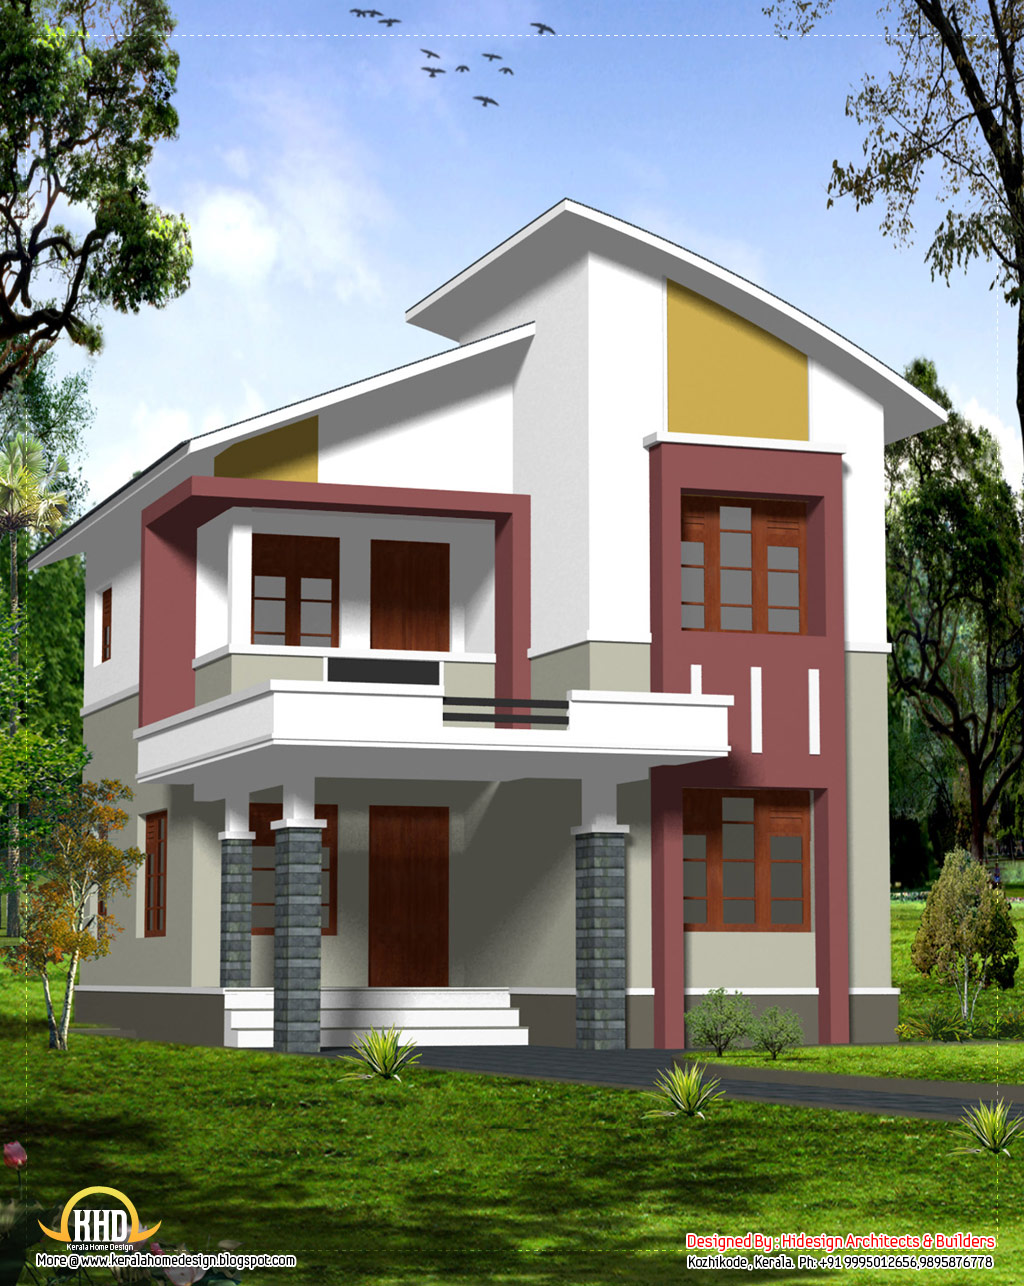 Budget home design 2140 sq ft kerala home design and for Architect home plans